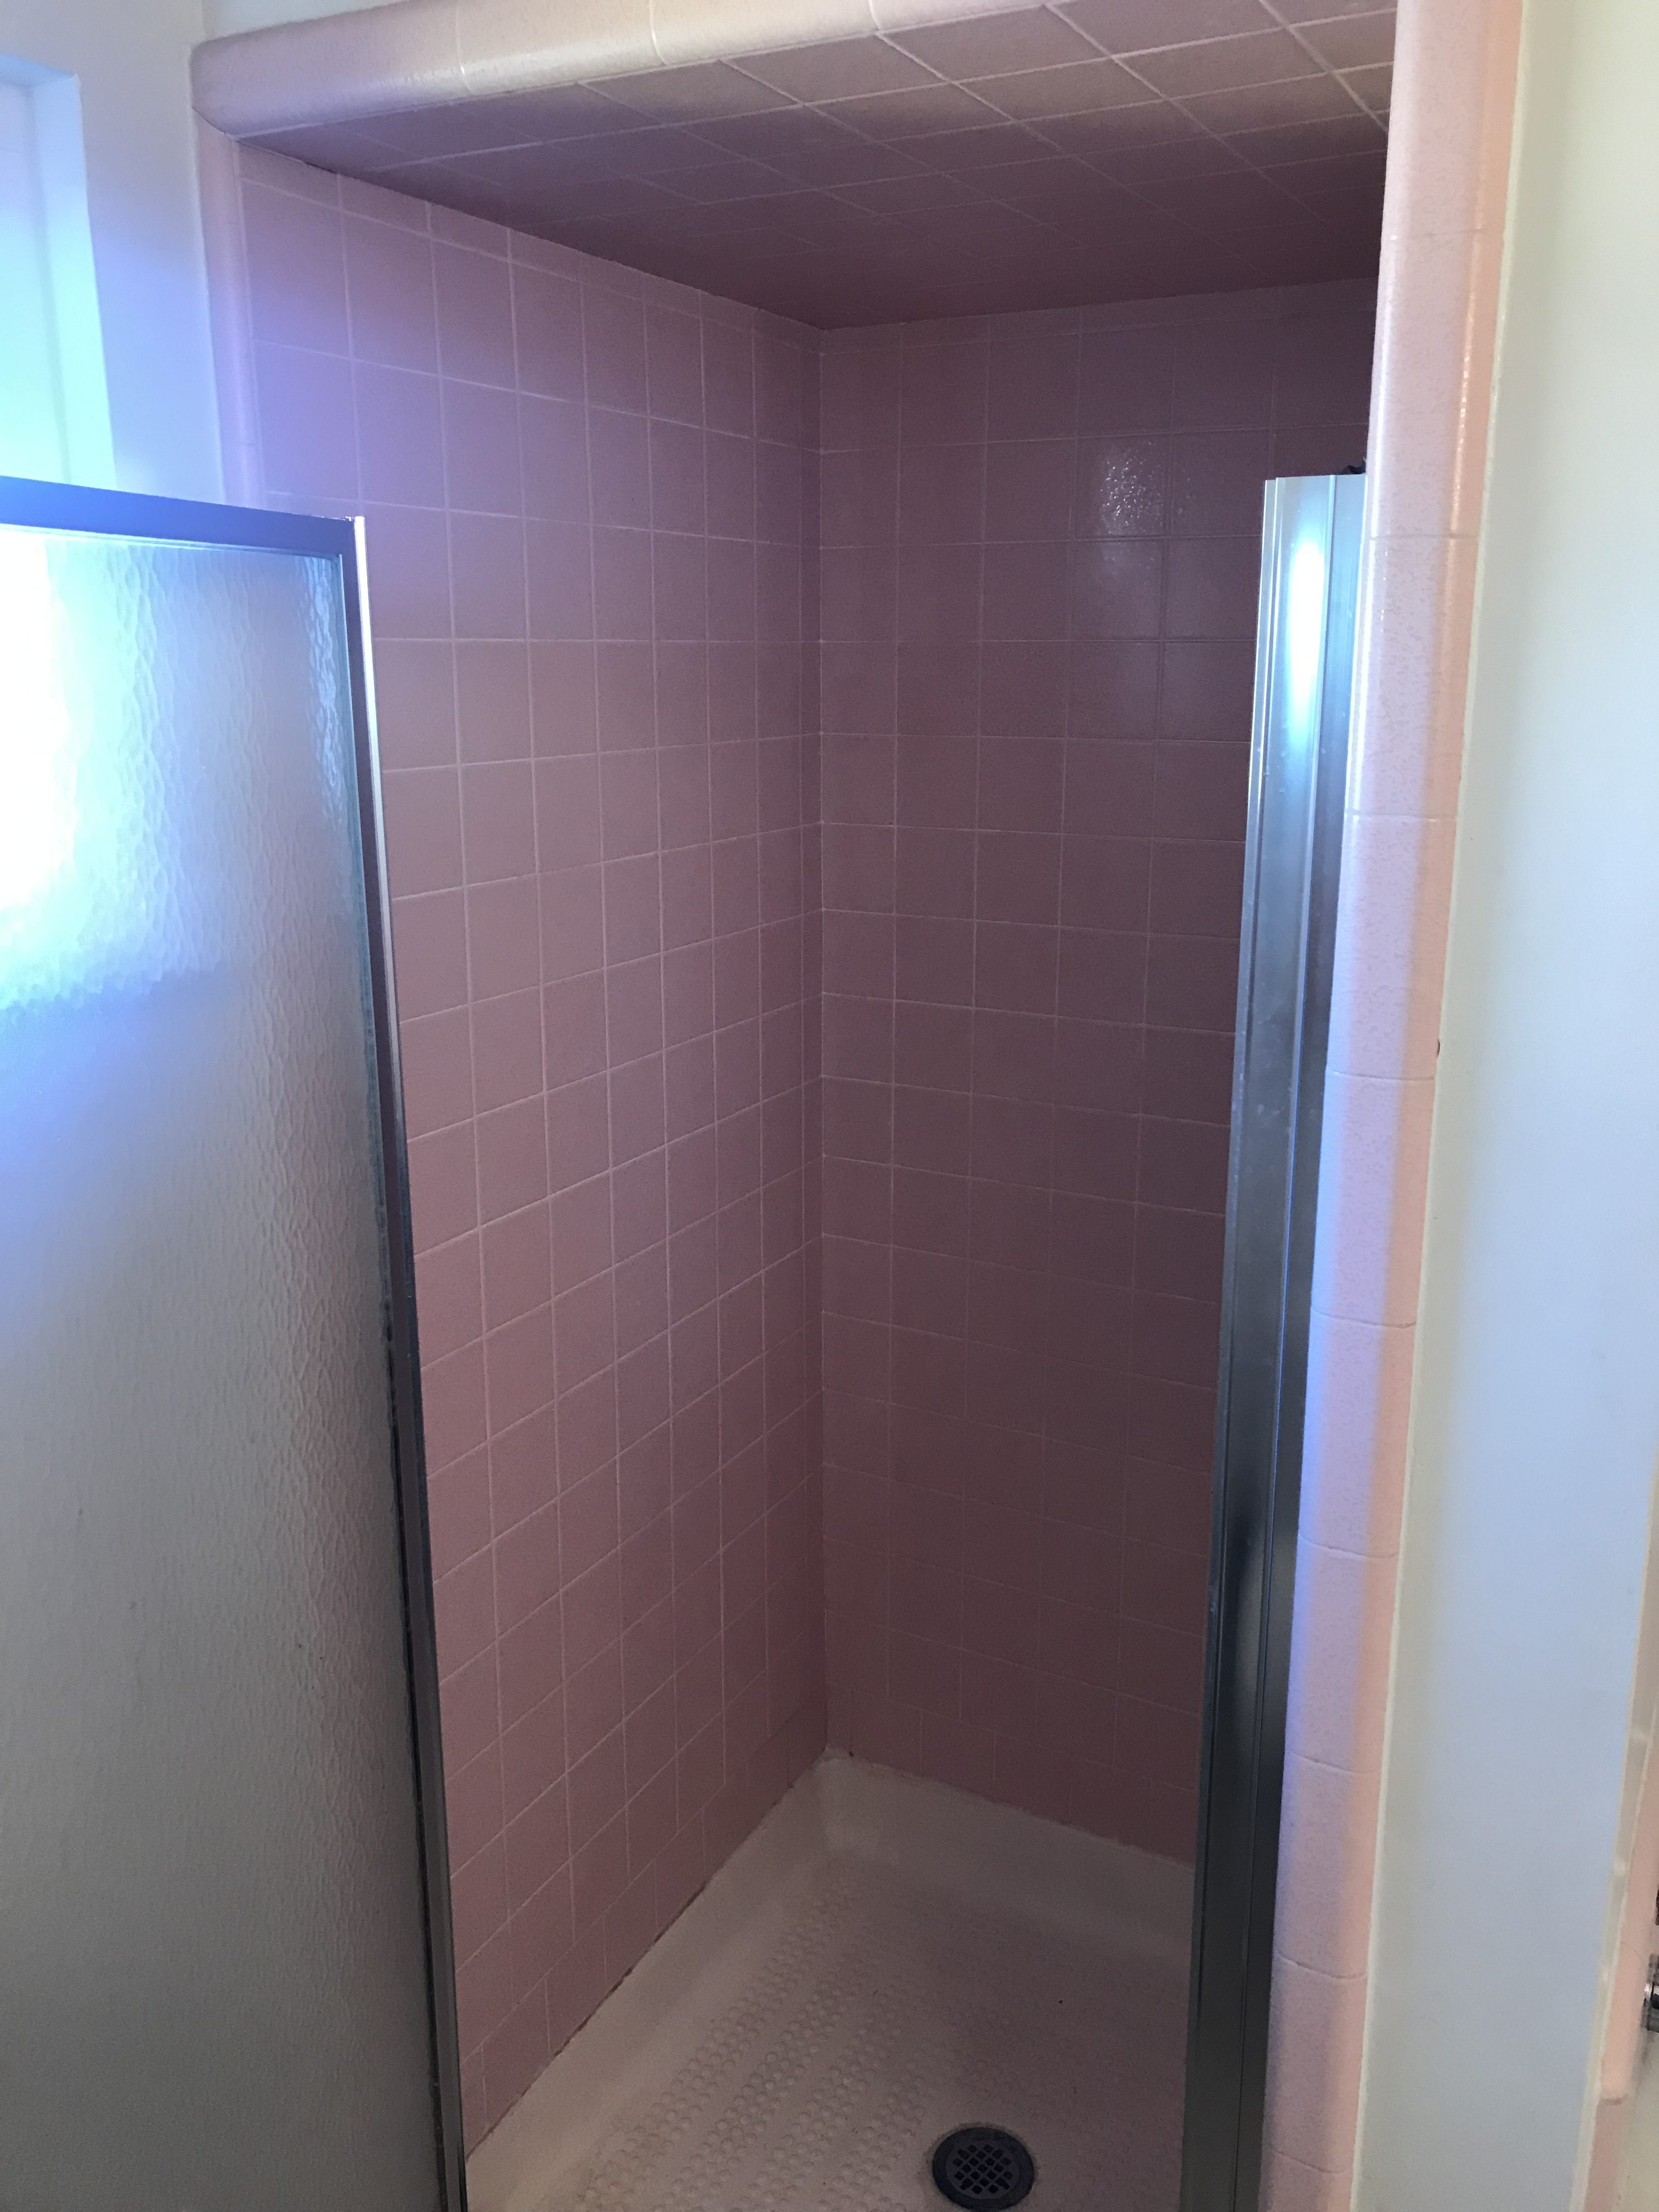 Shower Tile Resurfacing Before - NuFinishPro